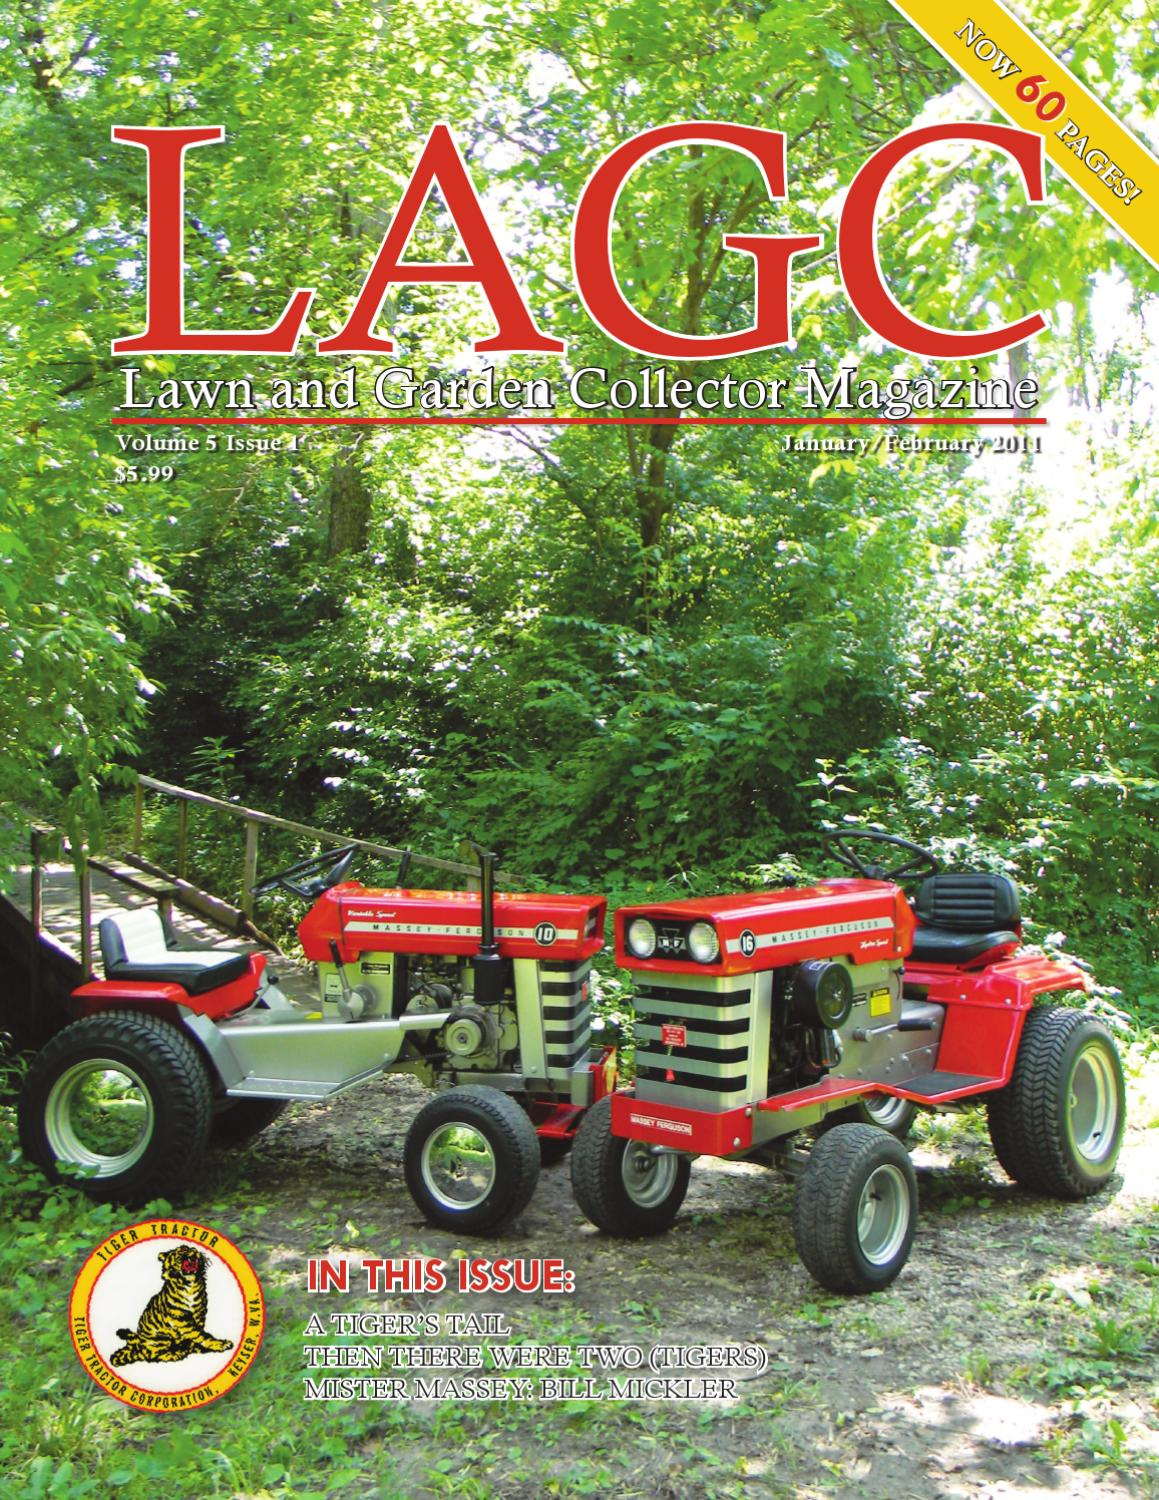 Issuu lagc lawn and garden collector by lagc magazine lawn and garden collector for A b lawn and garden